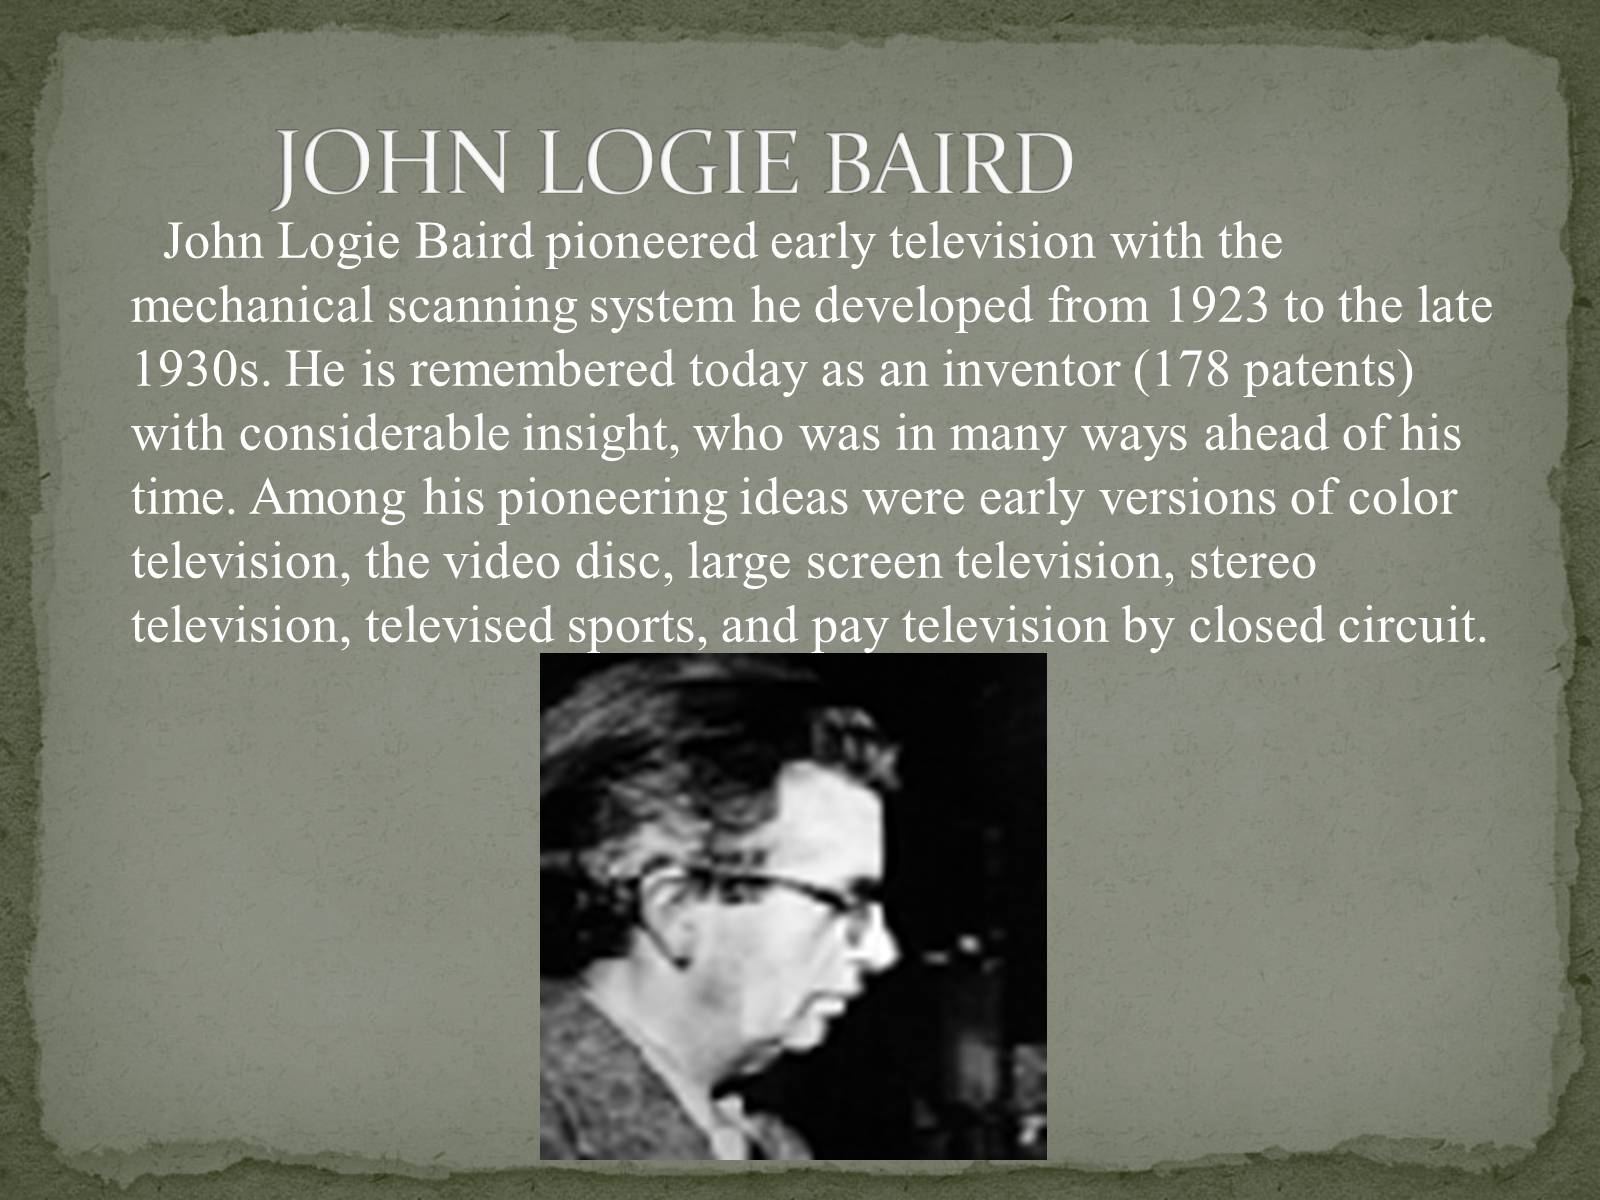 Презентація на тему «The Greatest inventors and invetentions John Logie Baird invented television» - Слайд #11